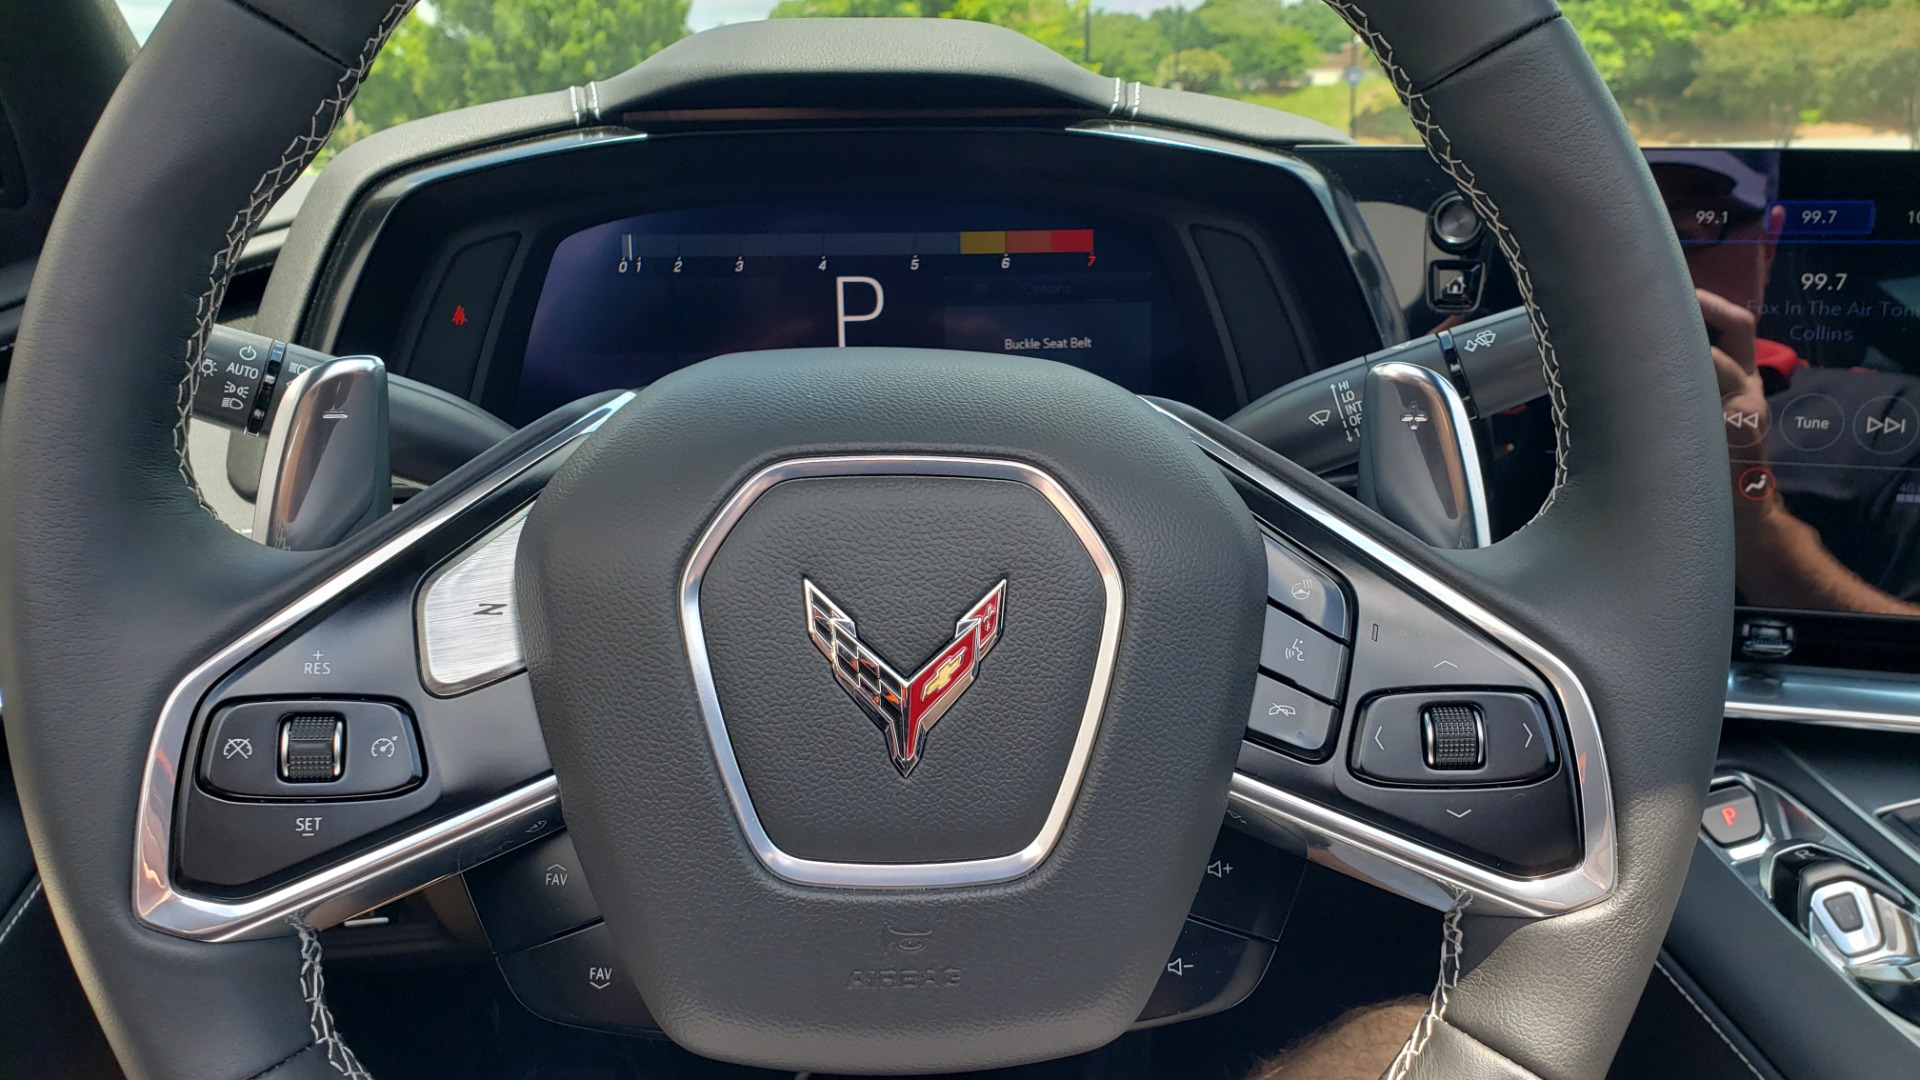 Used 2020 Chevrolet CORVETTE C8 STINGRAY COUPE 2LT / PERF & Z51 PKG / NAV / BOSE / 8-SPD AUTO / REARVIEW for sale Sold at Formula Imports in Charlotte NC 28227 47